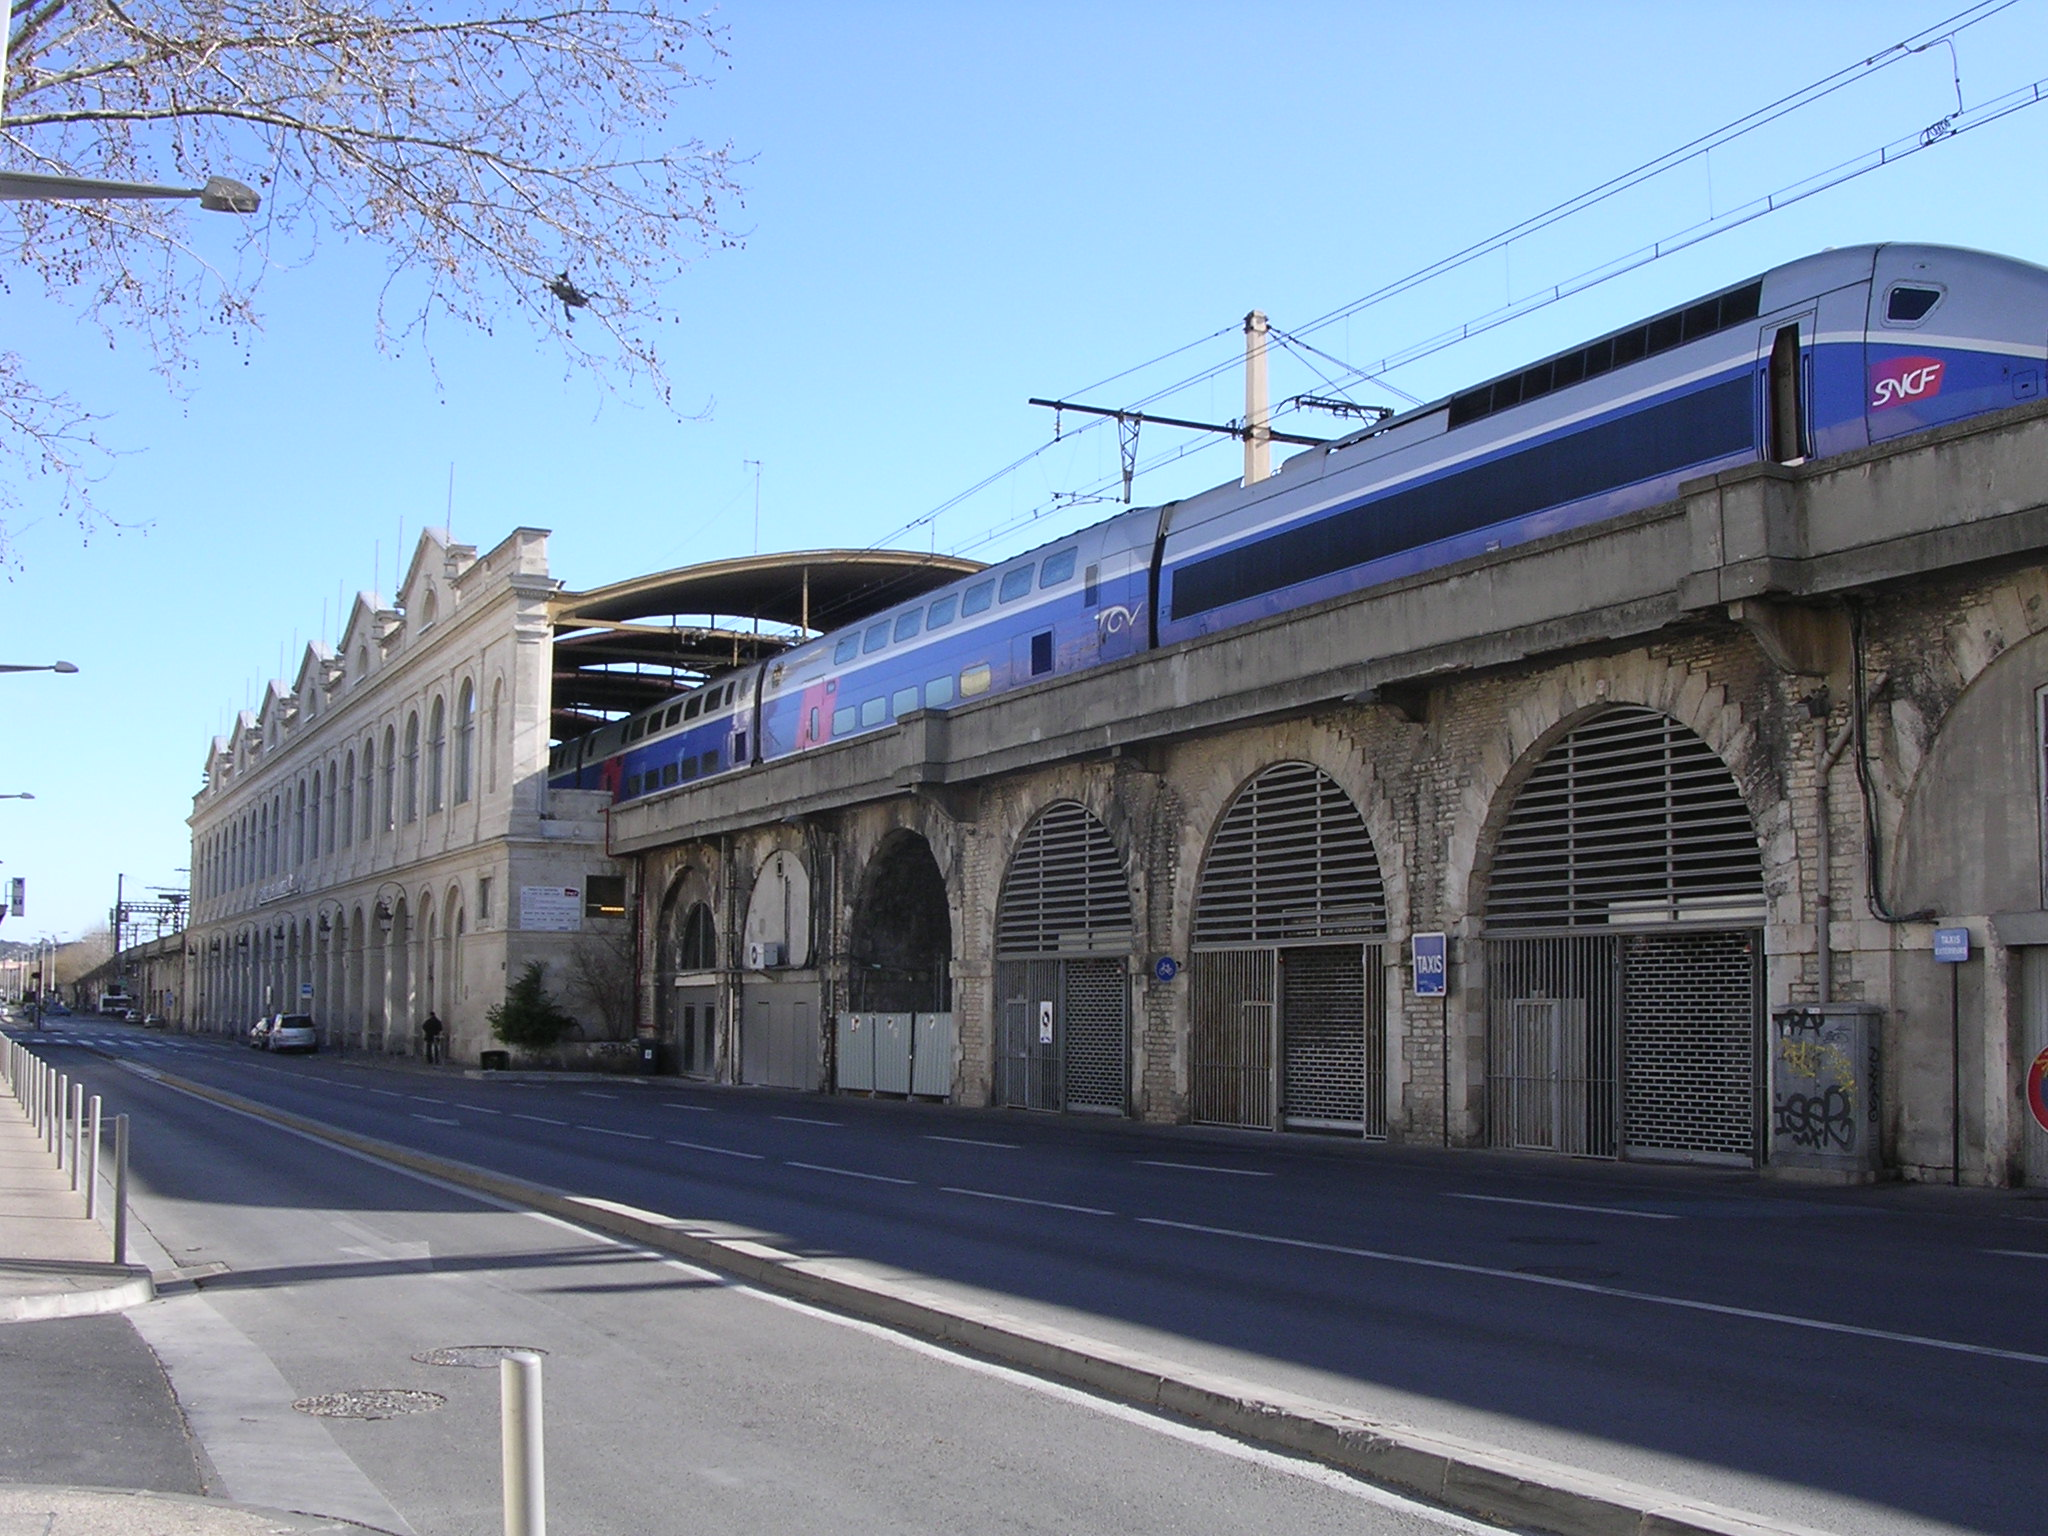 Sncf Train Avignion Centre Valence Ville